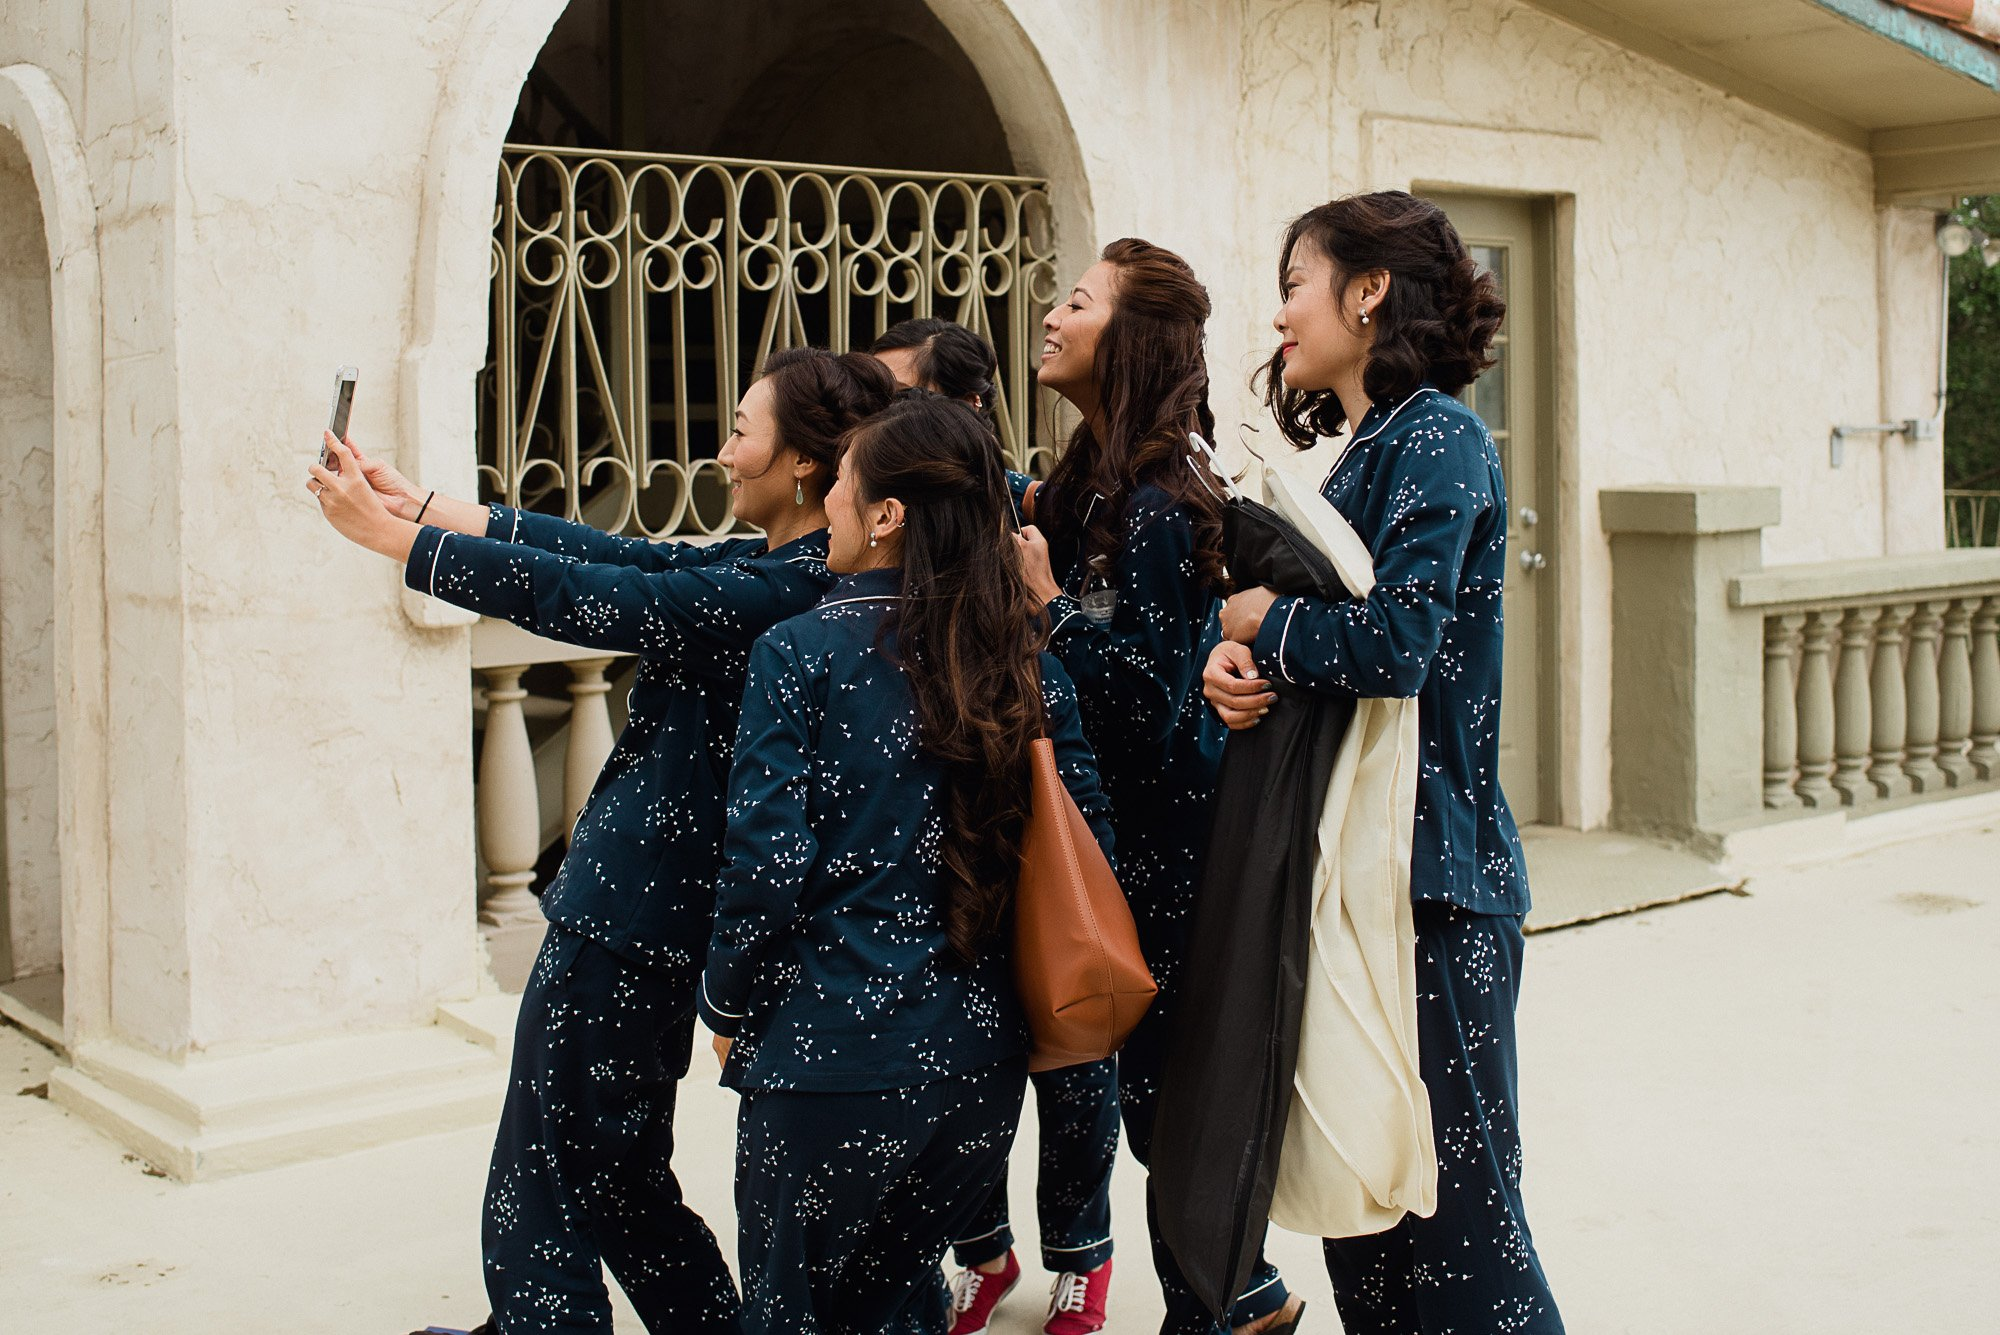 bride and bridesmaids taking a selfie together before getting ready